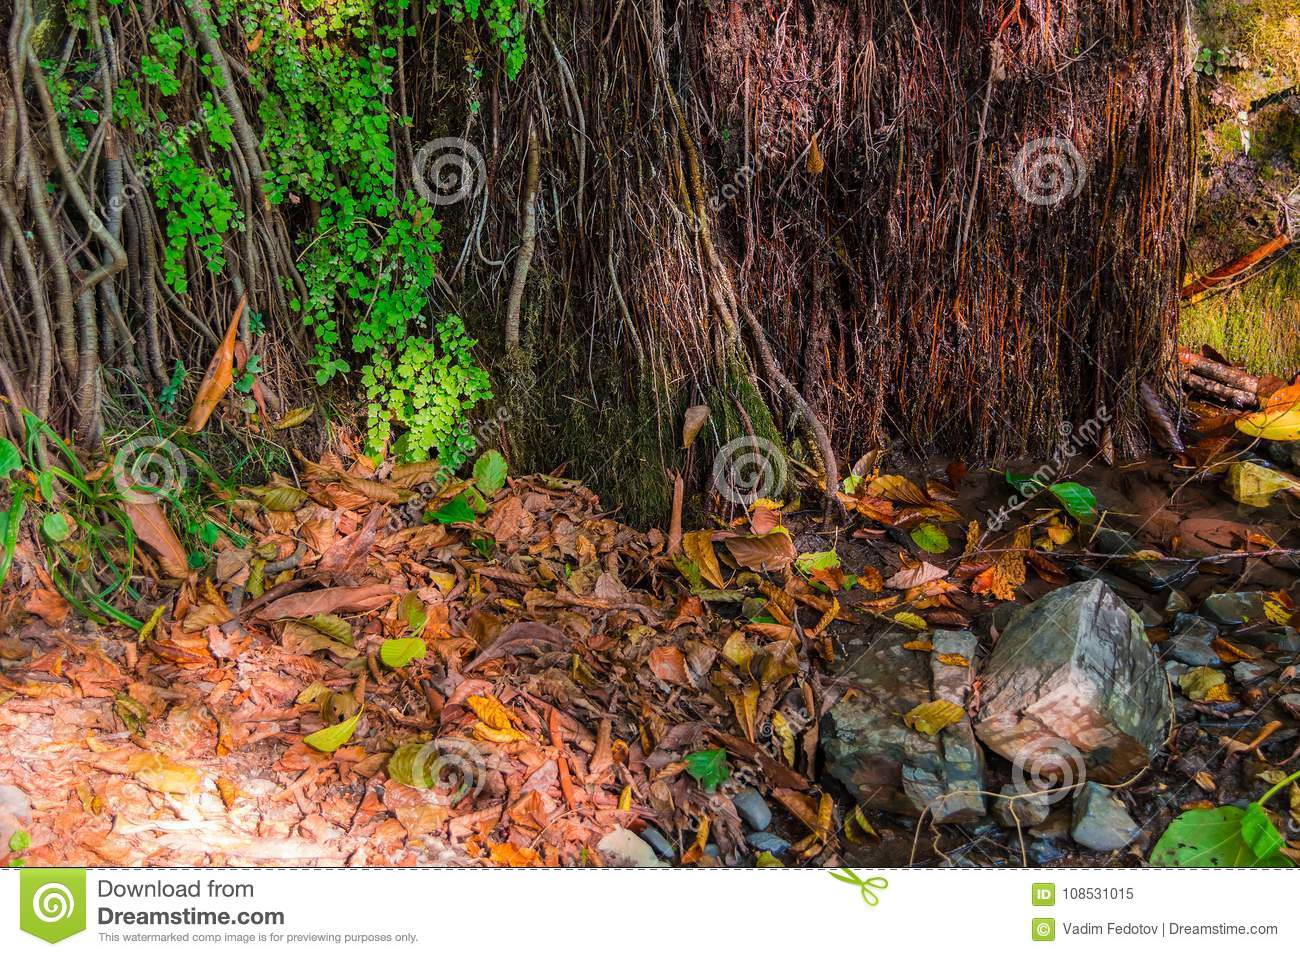 Wall Of Mountain With Vegetation And Dry Leaves On Ground